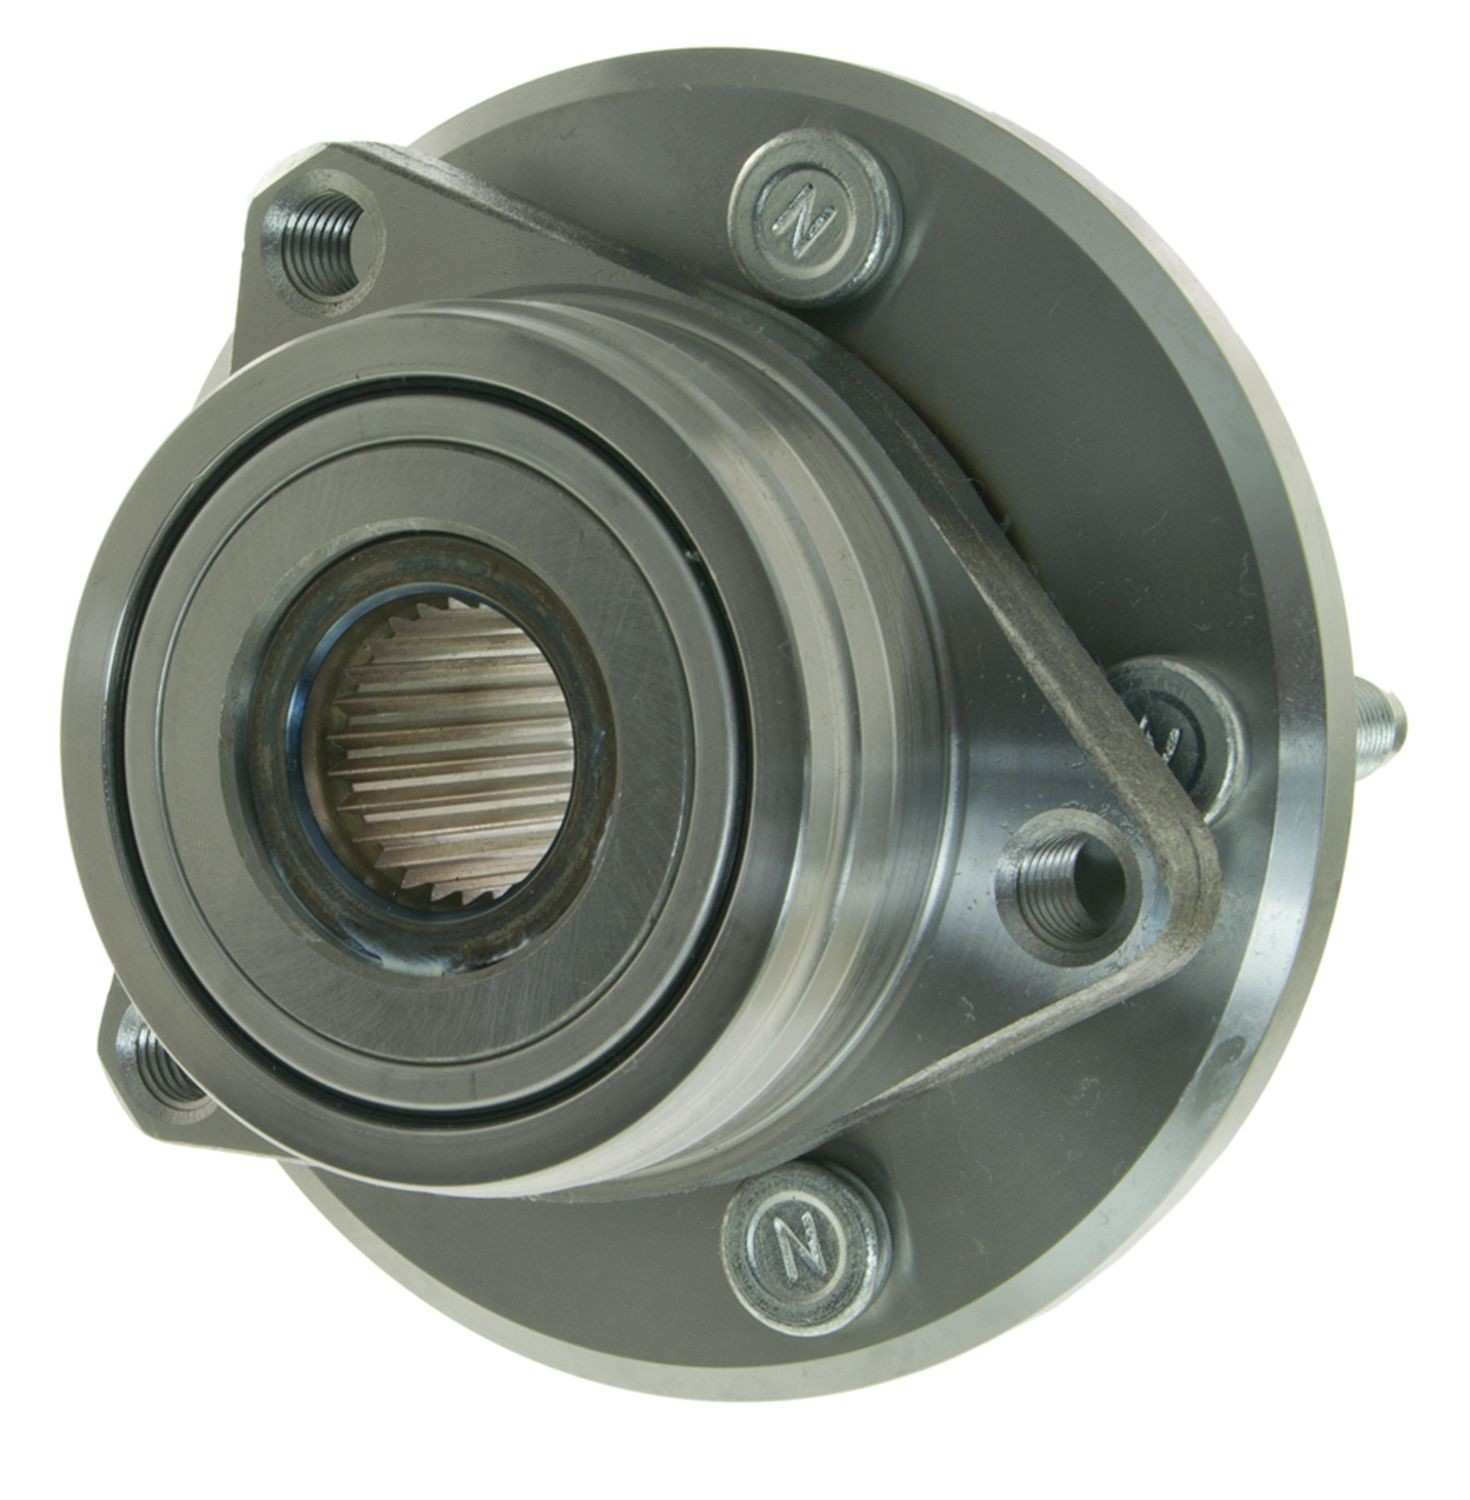 MAGNETI MARELLI OFFERED BY MOPAR - Magneti Marelli Wheel Bearing and Hub Assembly - MGM 1AMH513100